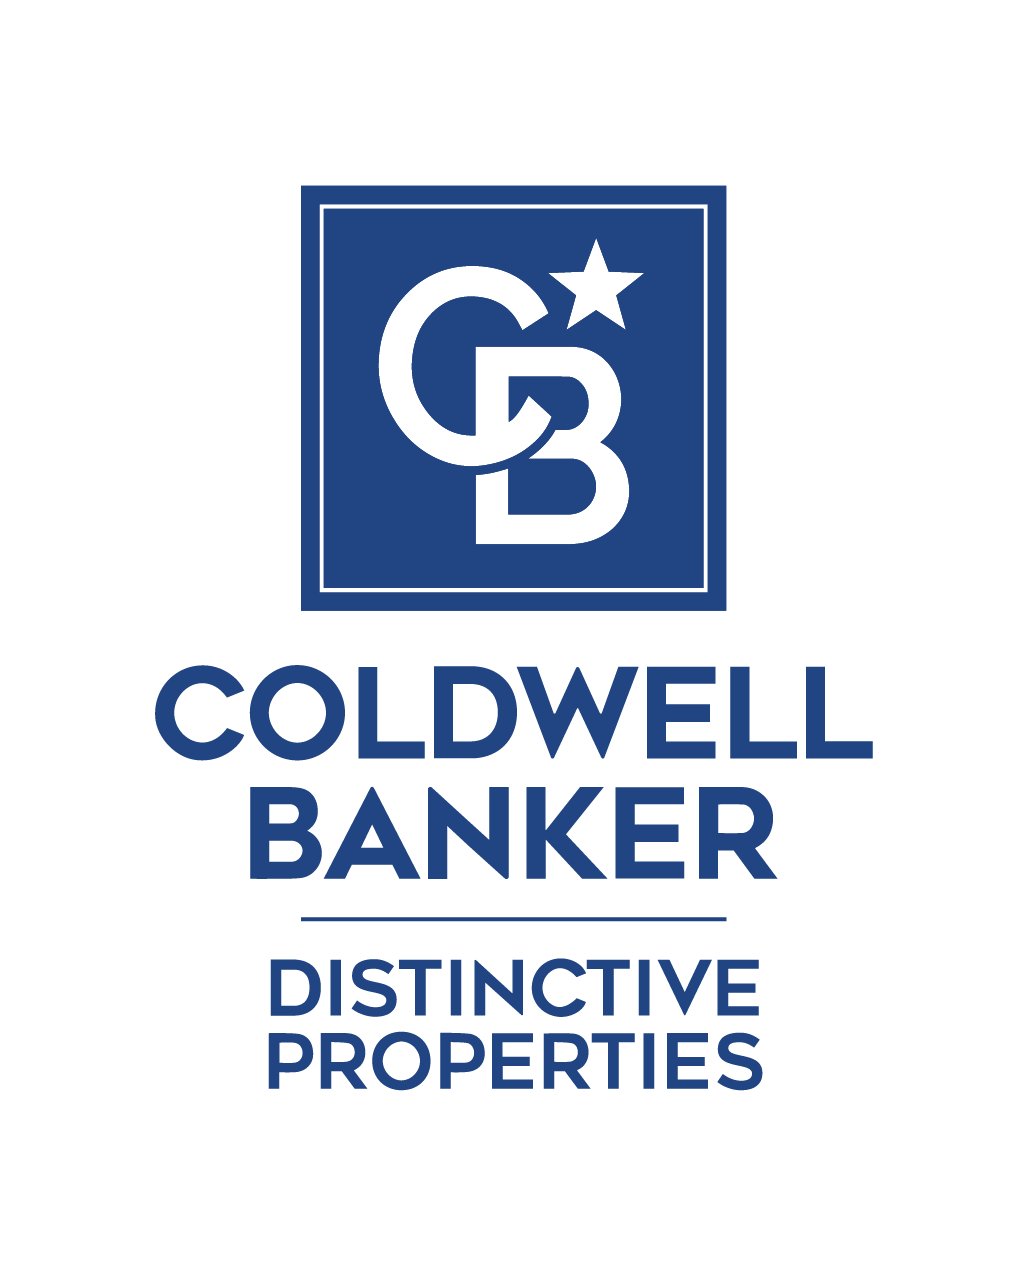 Elizabeth Calihan - Coldwell Banker Distinctive Properties